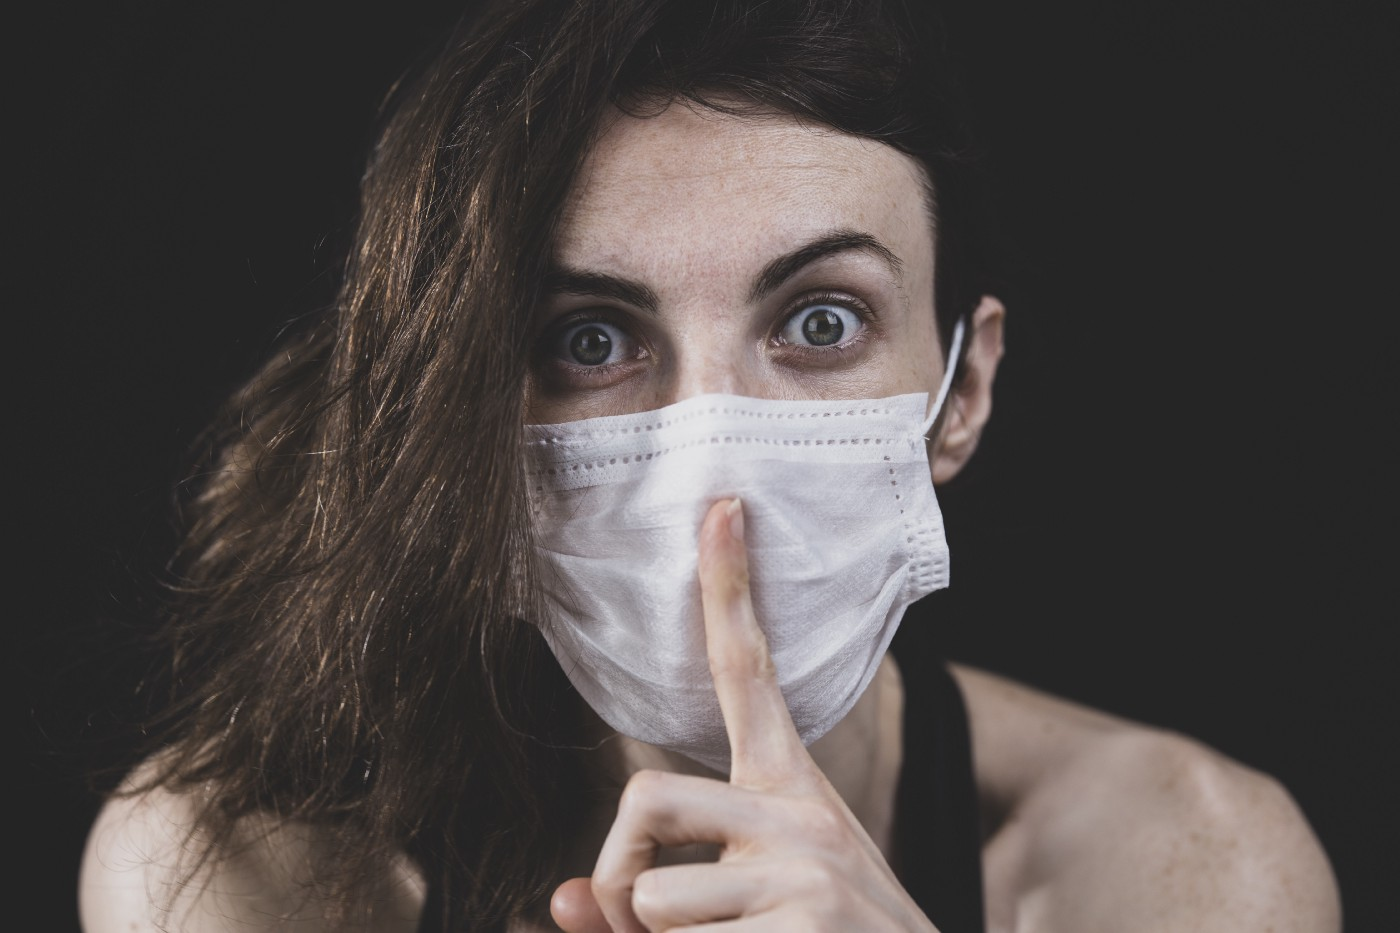 Woman wearing a face mask and holding a finger to her lips as if keeping a secret.